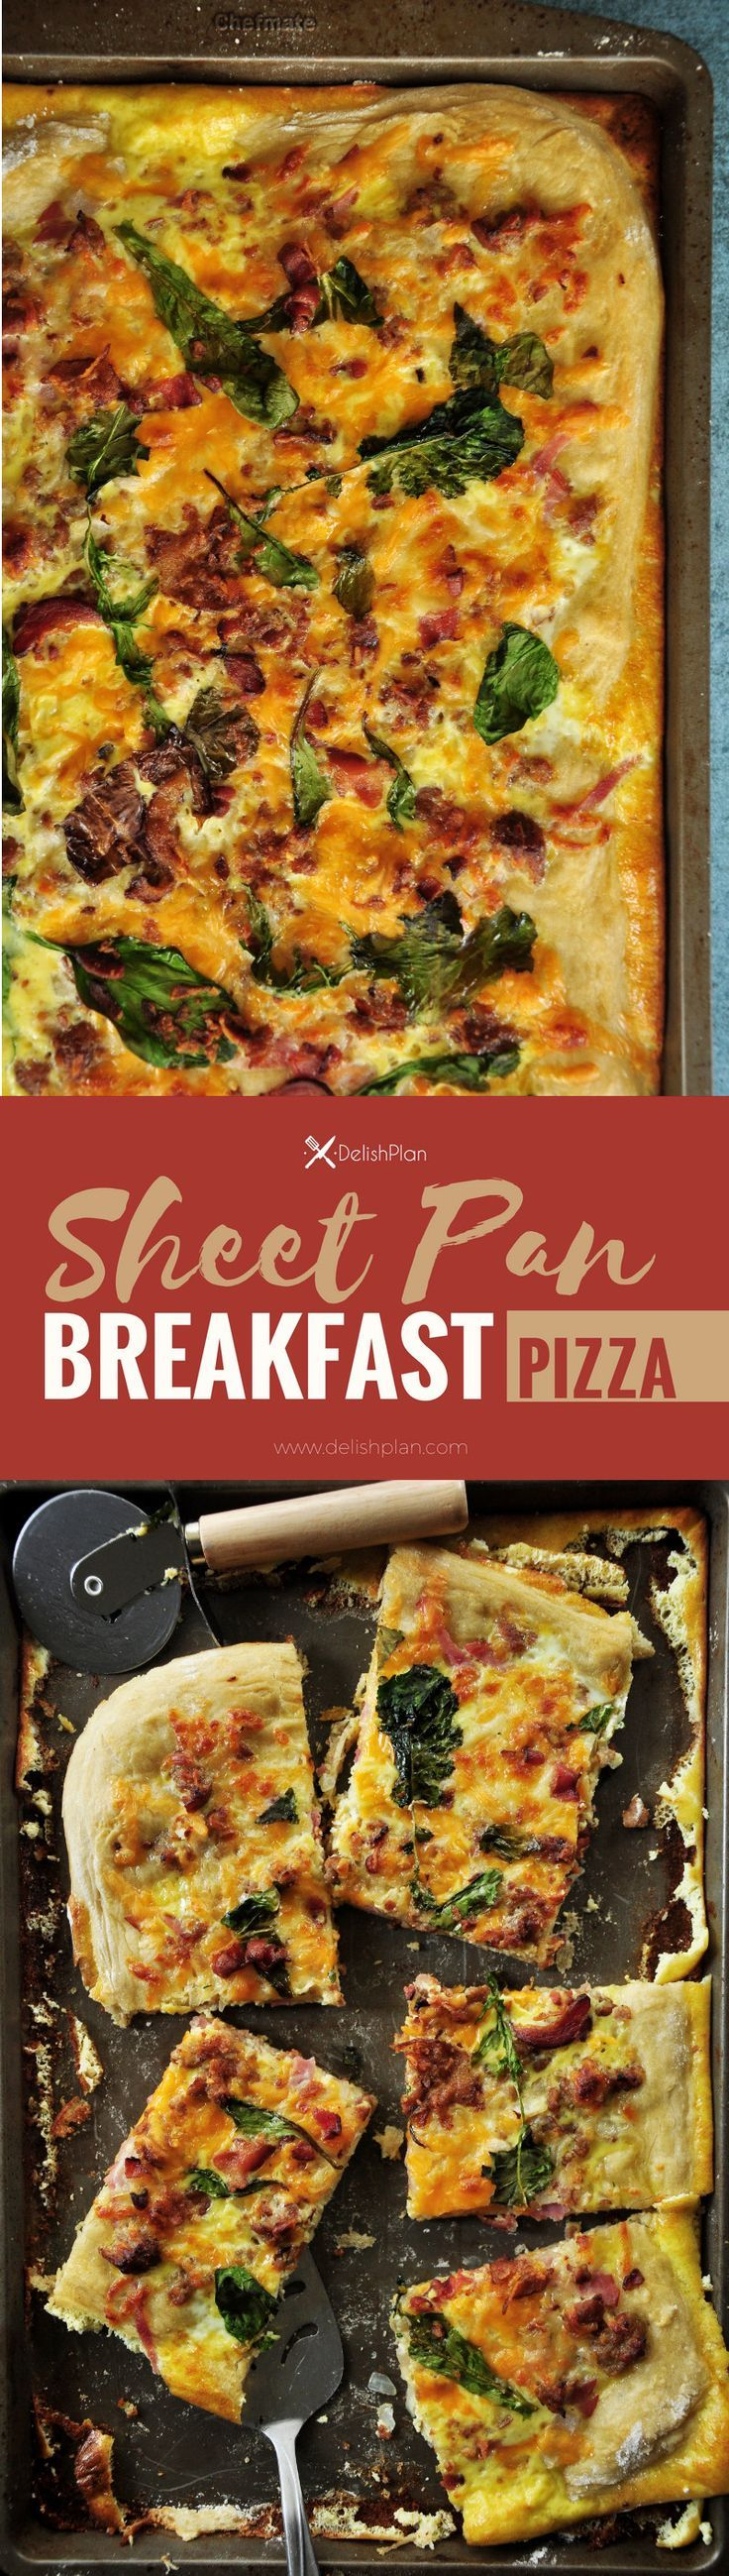 Sheet pan breakfast pizza recipe incorporates your favorite breakfast ingredients like bacon and eggs, plus onions and greens for a balanced one-pan meal.